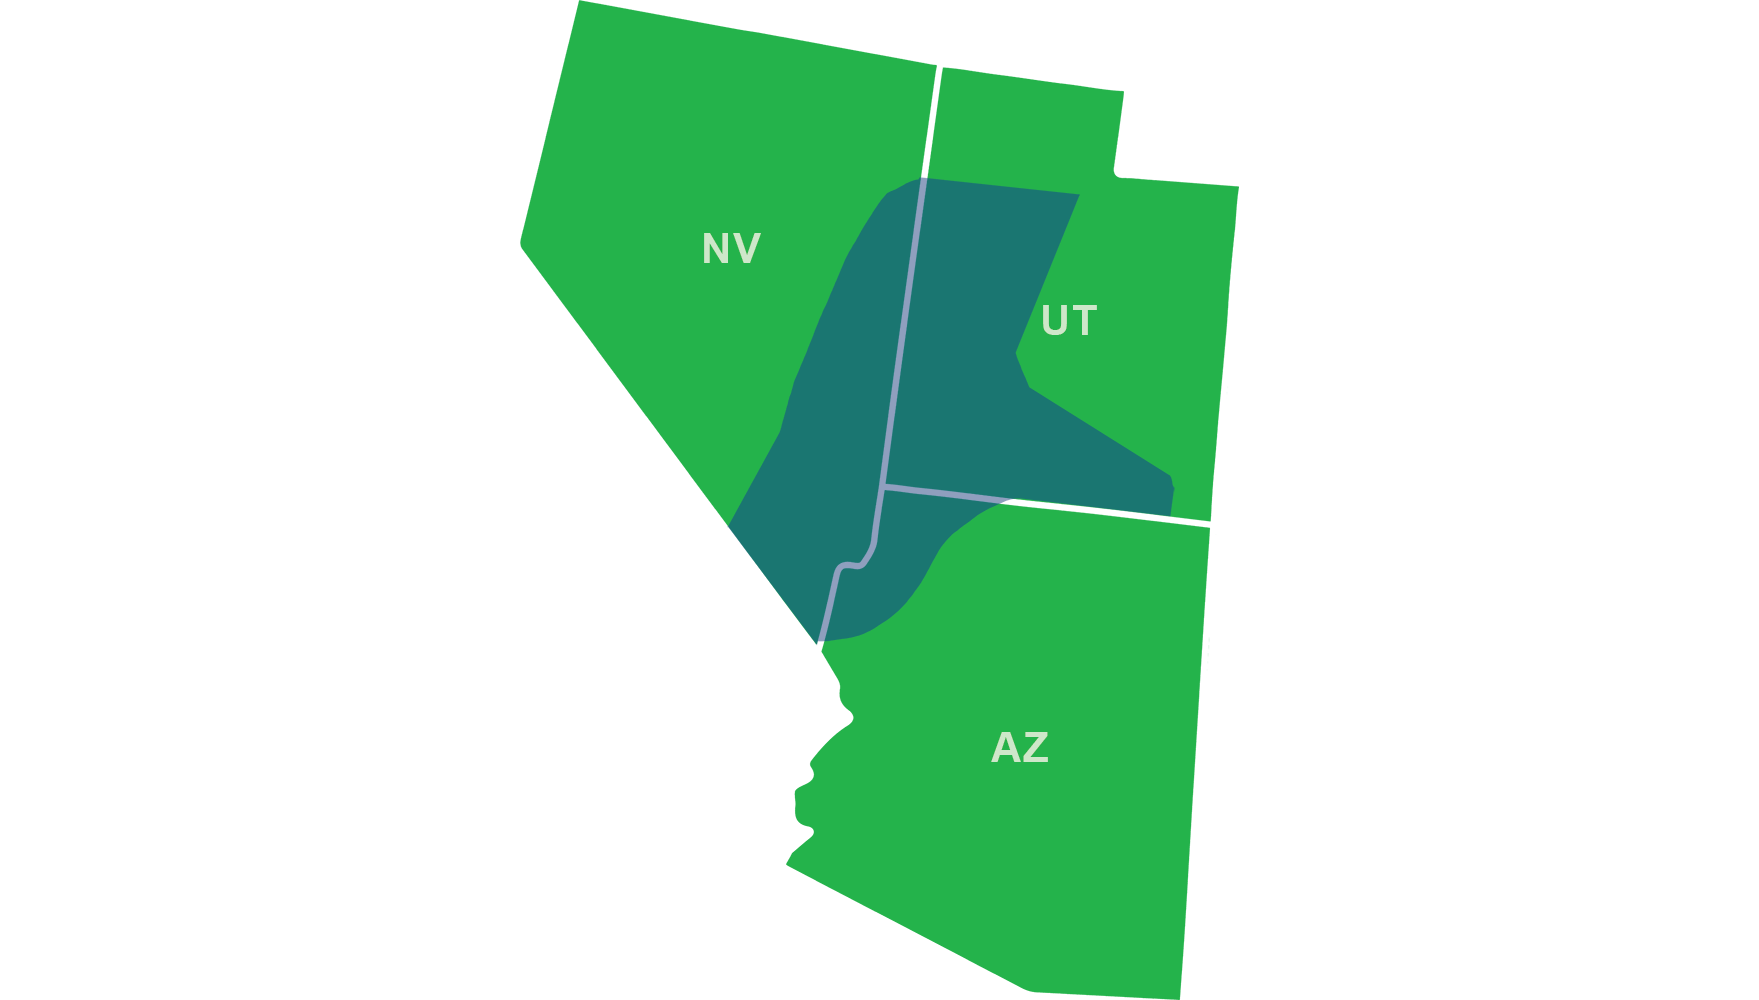 Cumberland Buildings by area - AZ, NV, UT (west) - Abbreviated.png